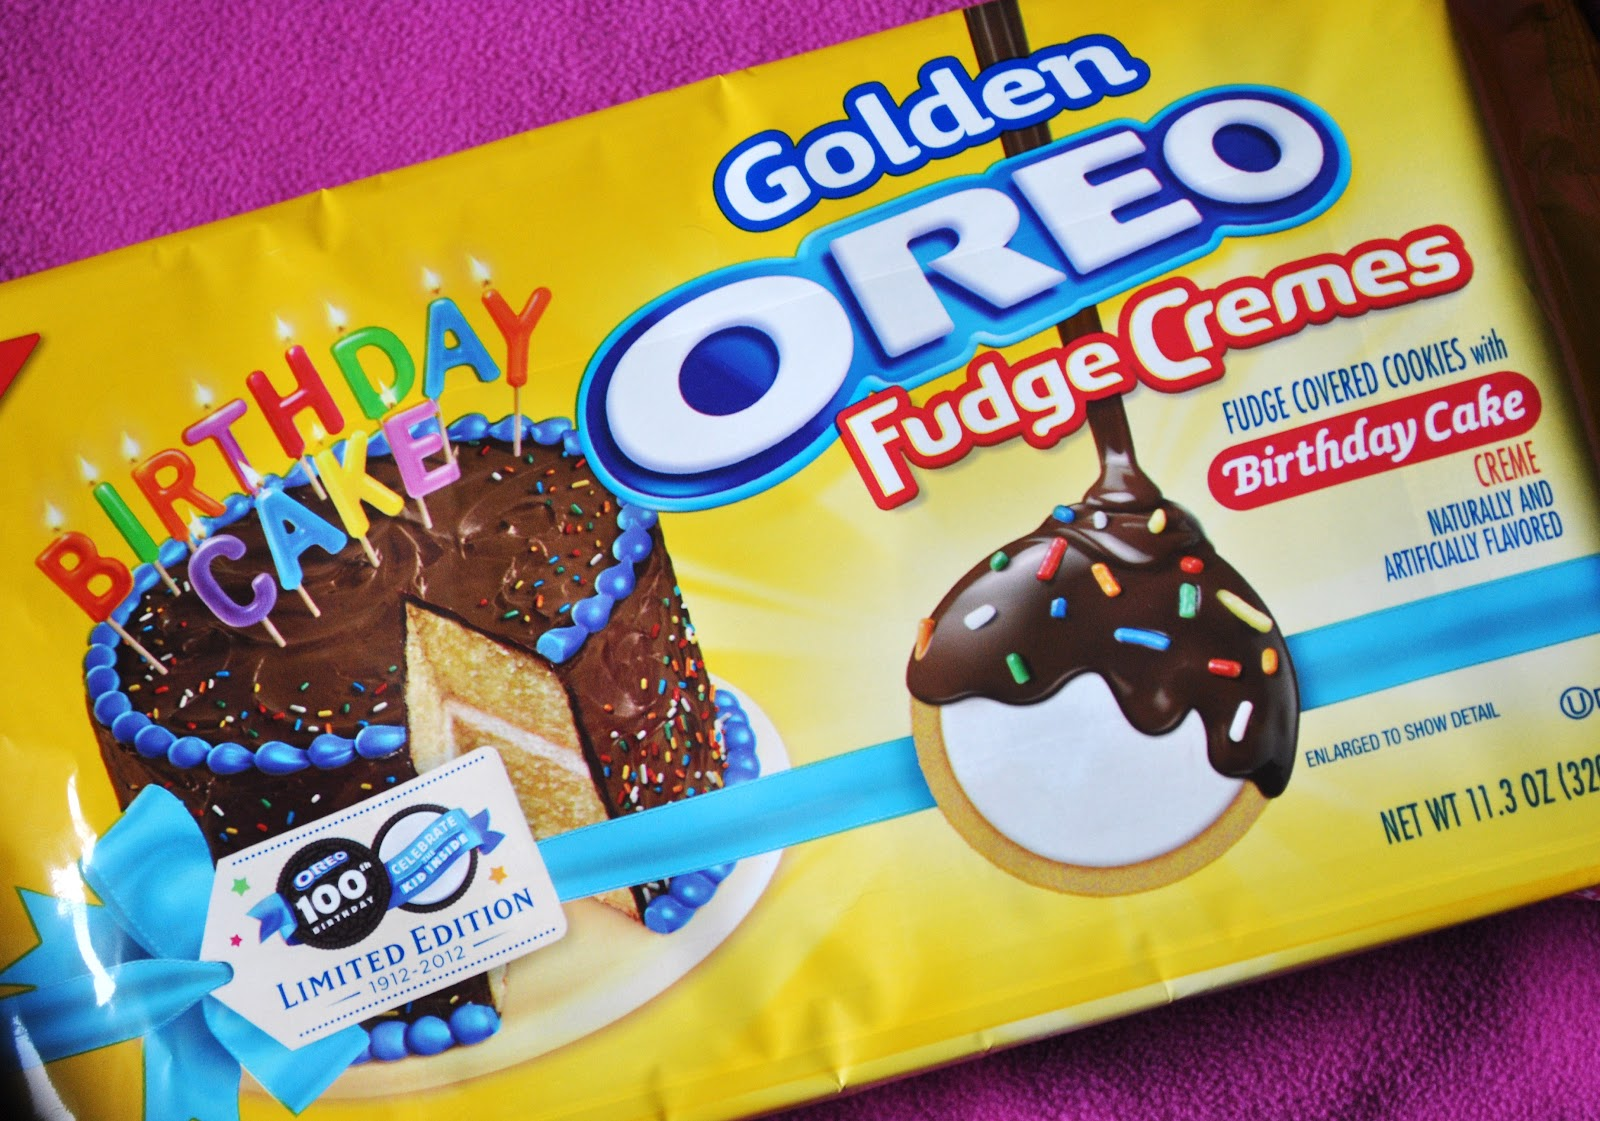 Birthday Cake Golden Oreo Fudge Cremes Foodette Reviews